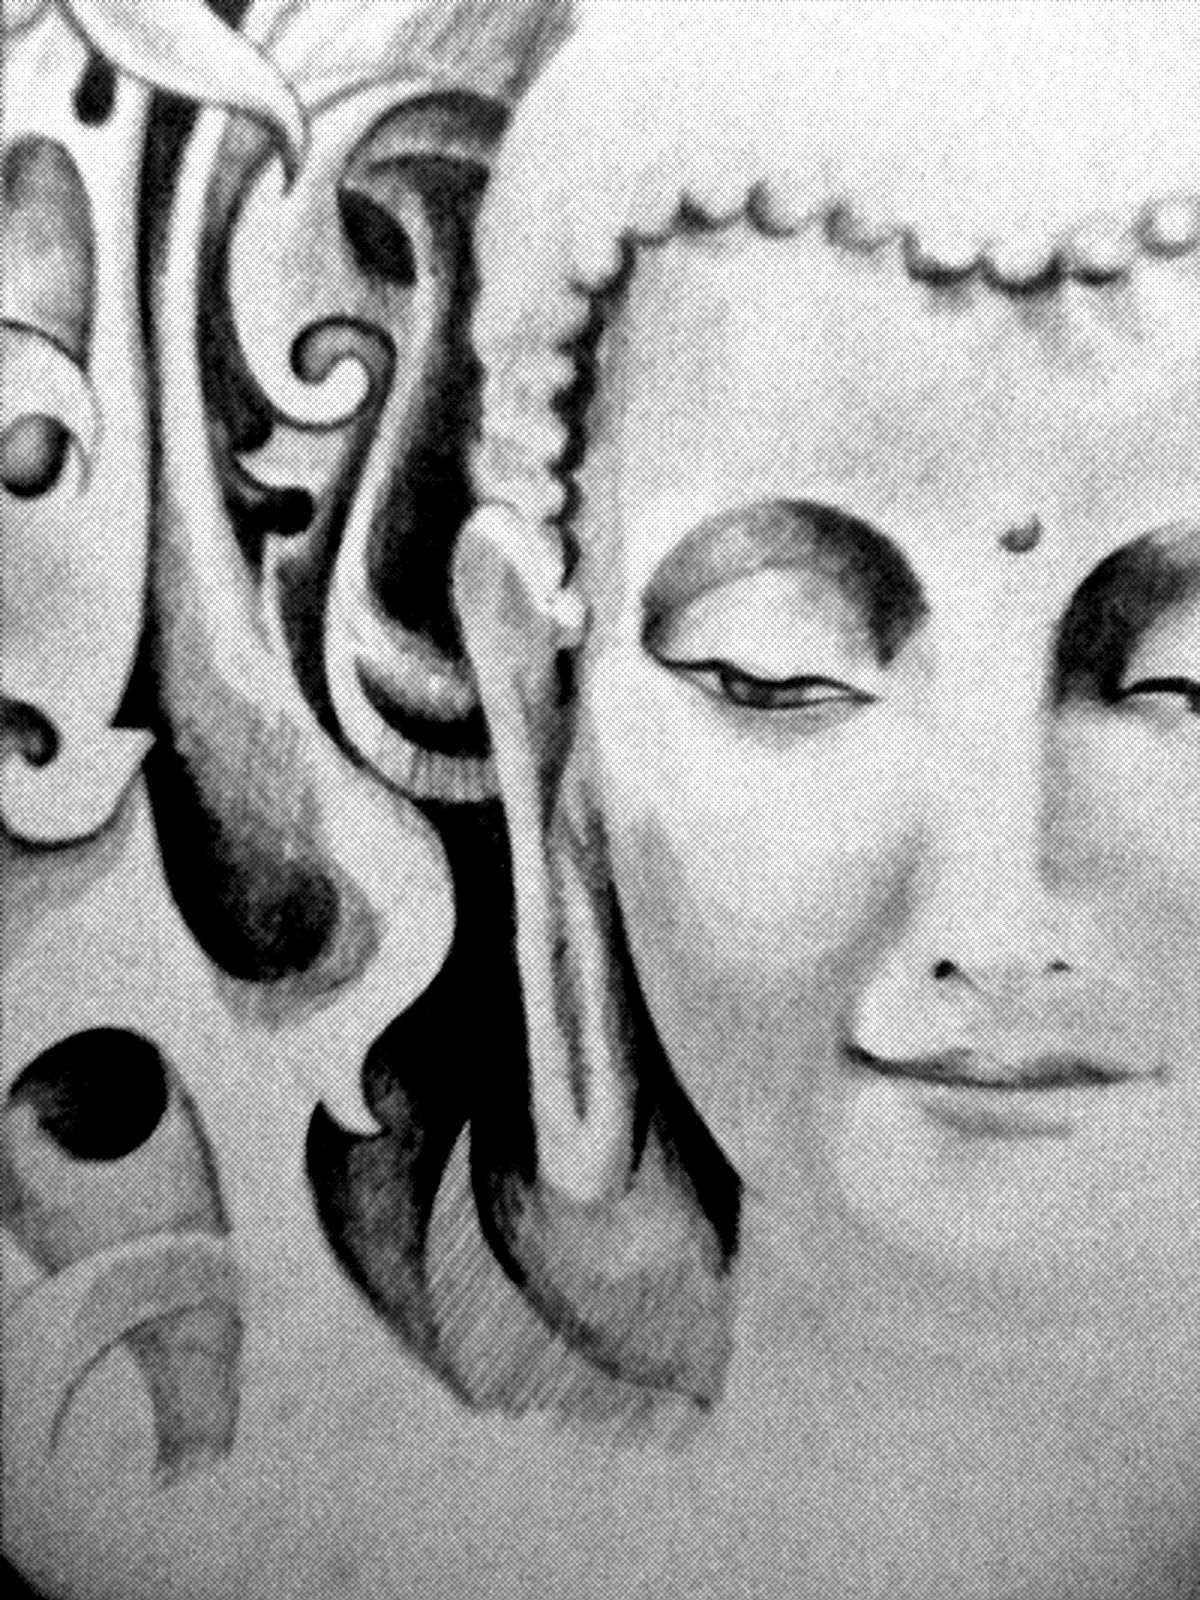 Pencil sketching on lord buddha